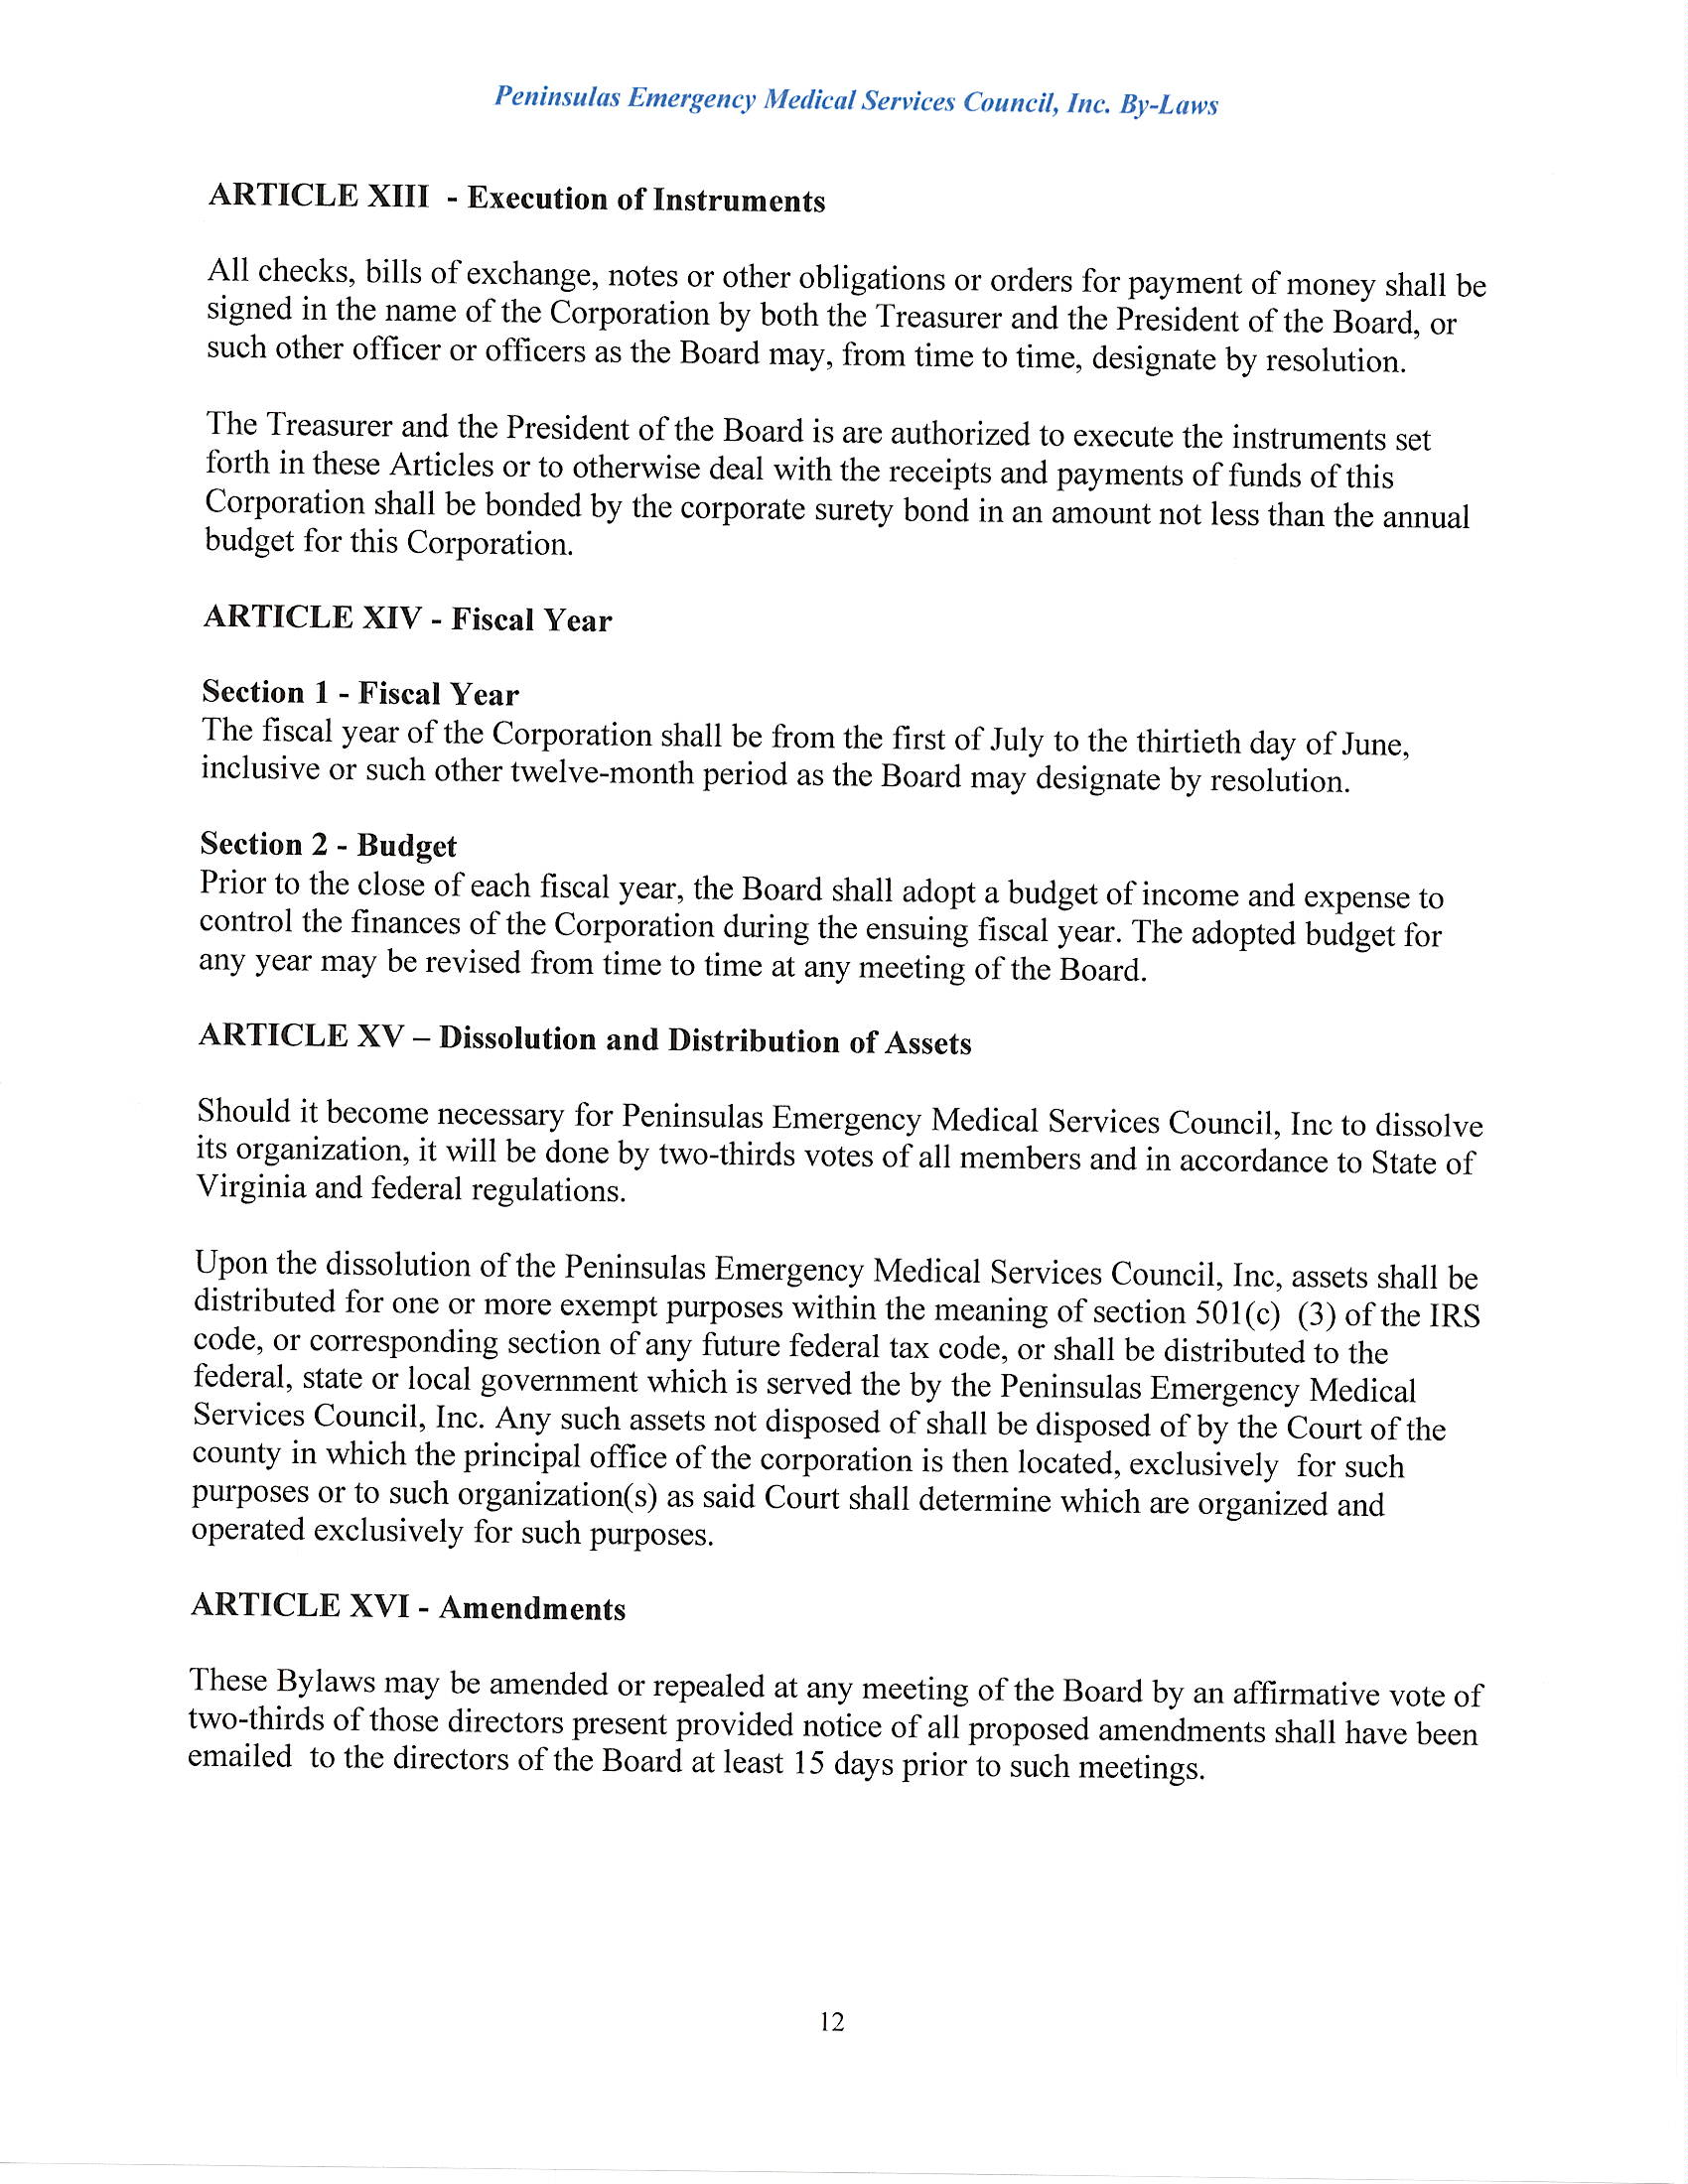 PEMS Bylaws 9 19 18 Page 12